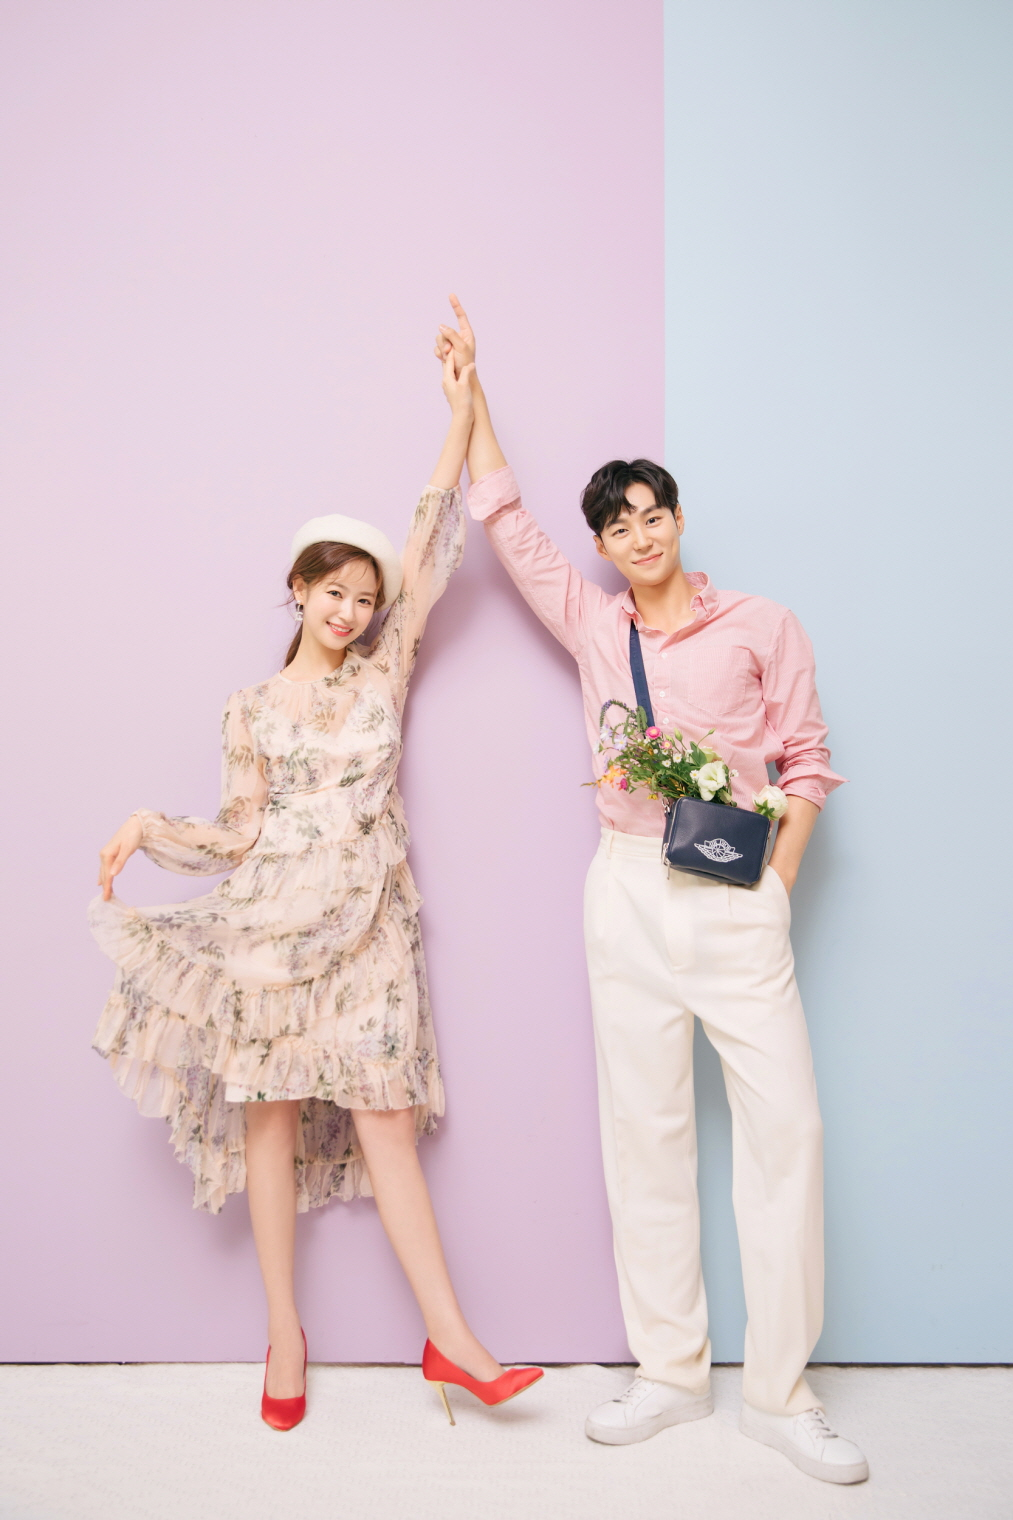 korean wedding photoshoot pink and blue background shot